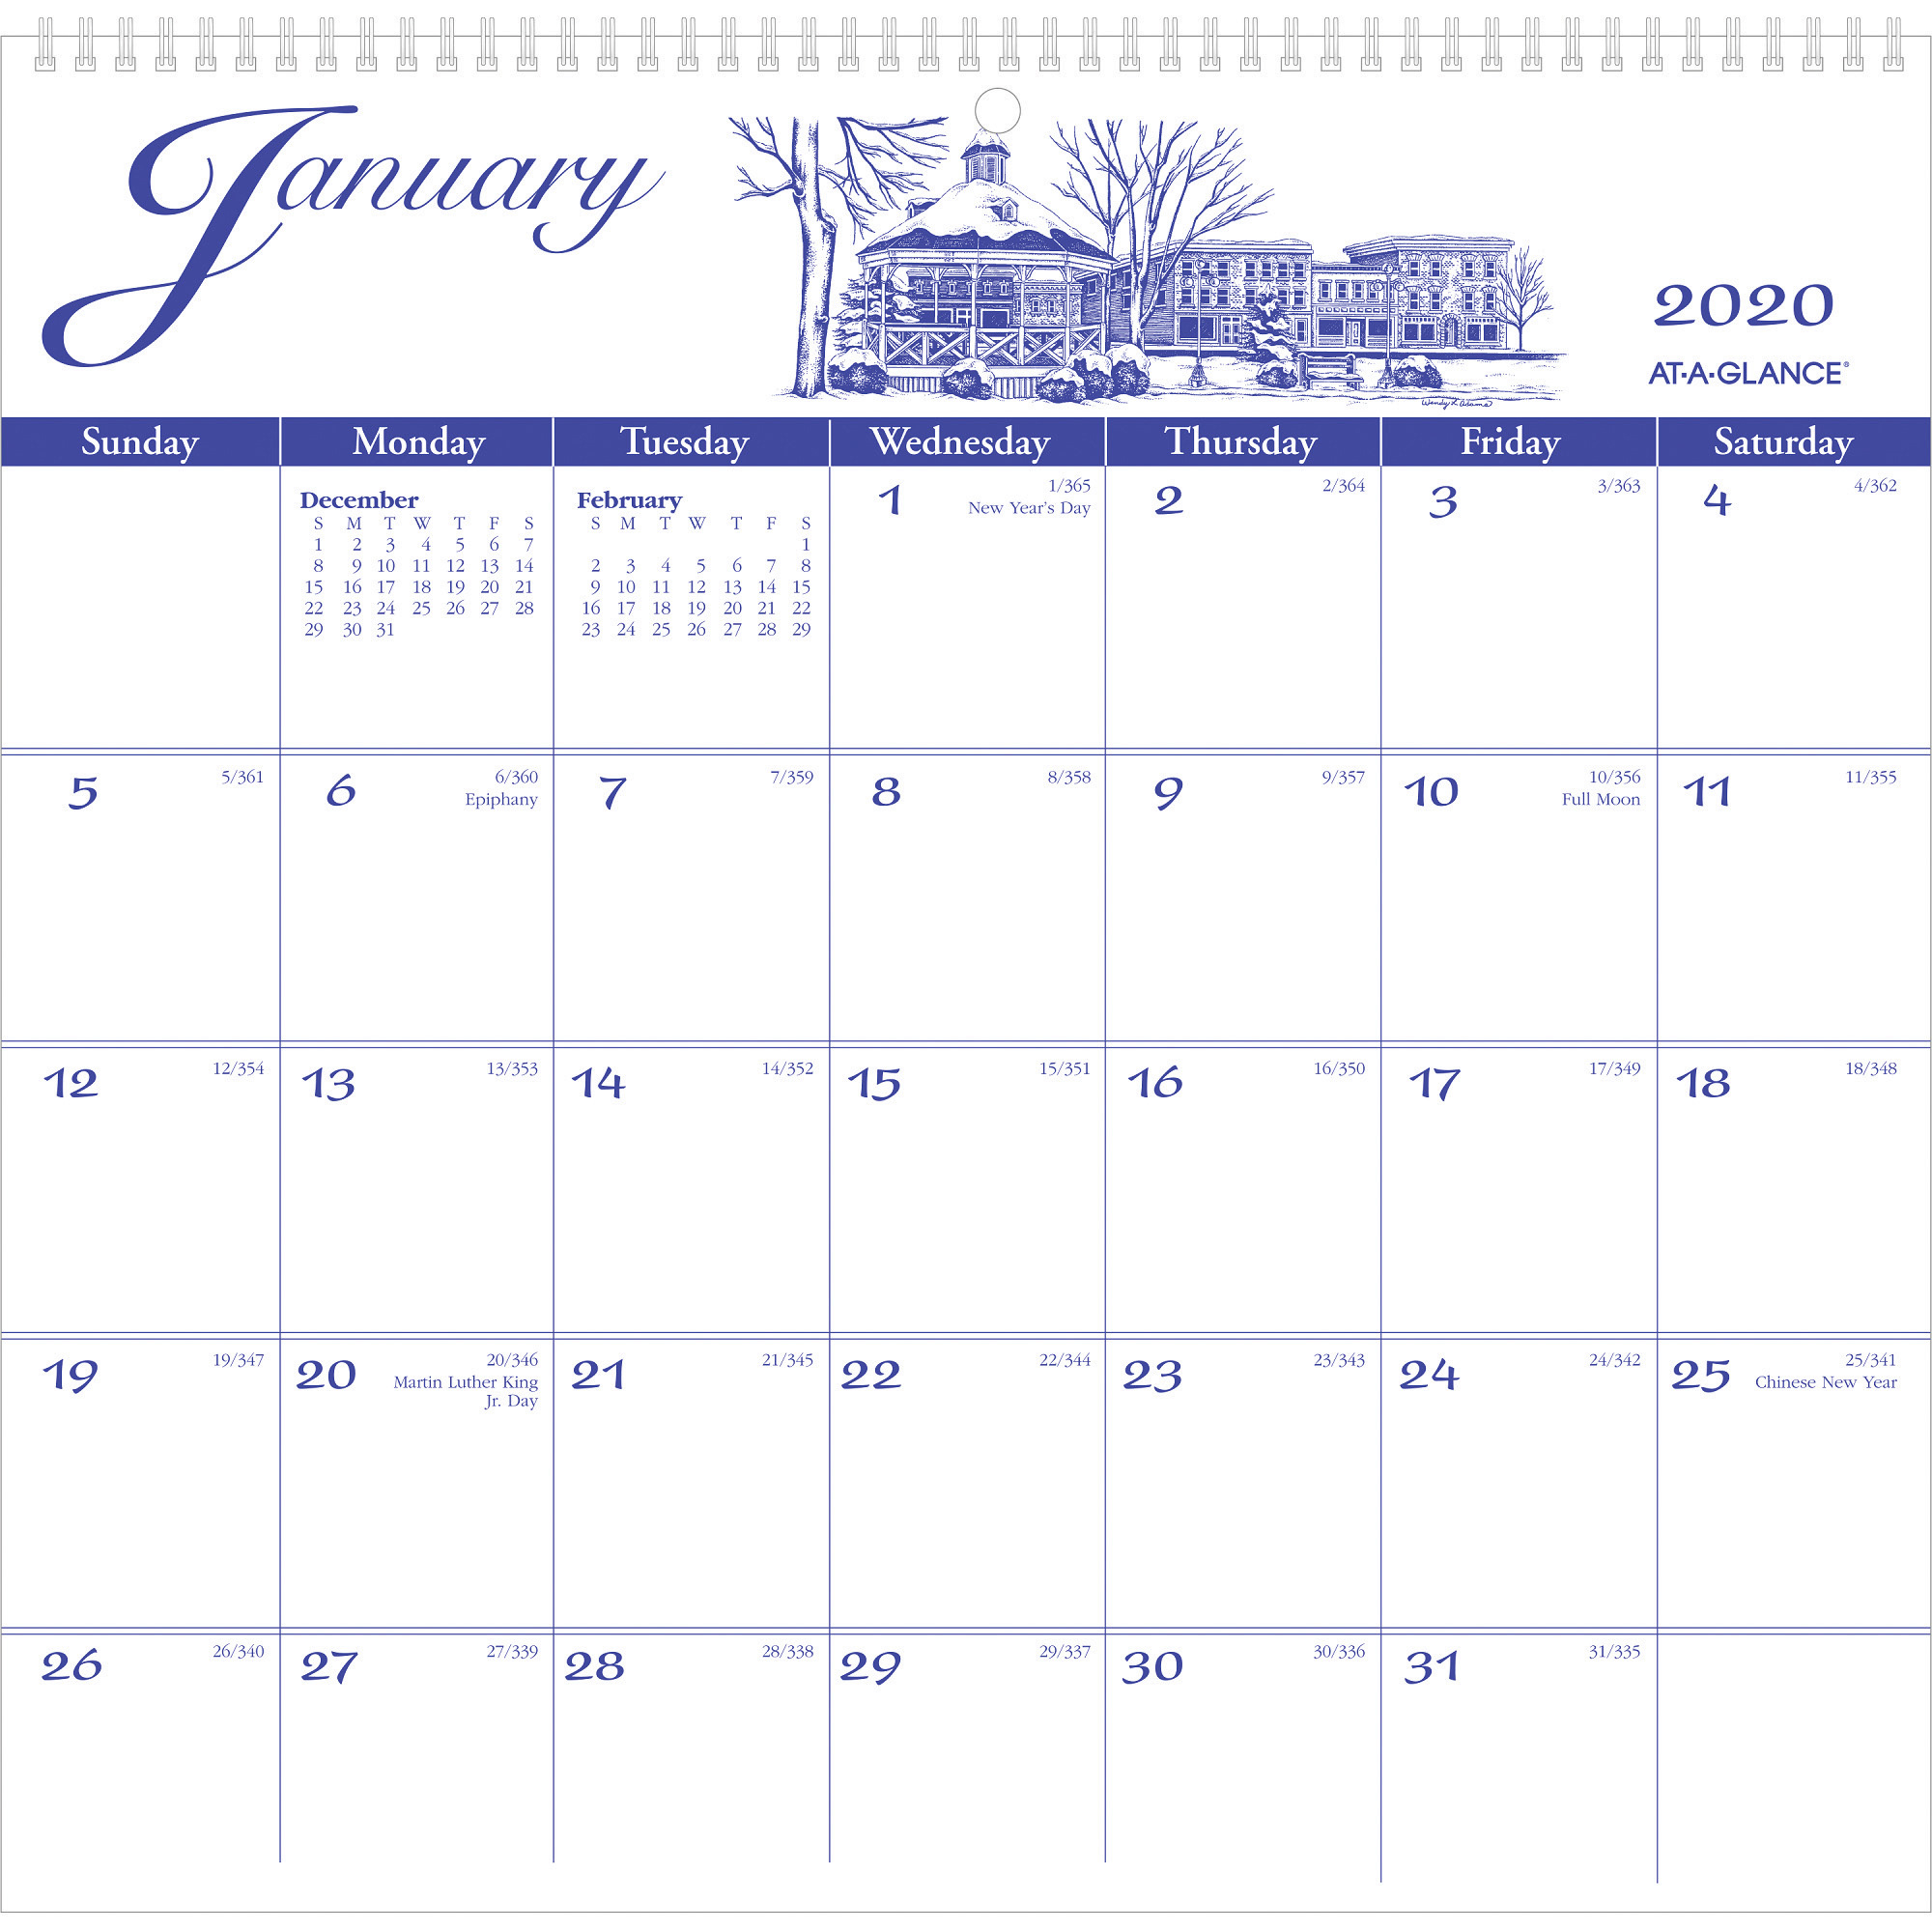 At-A-Glance Illustrators Edition Monthly Wall Calendar - Yes